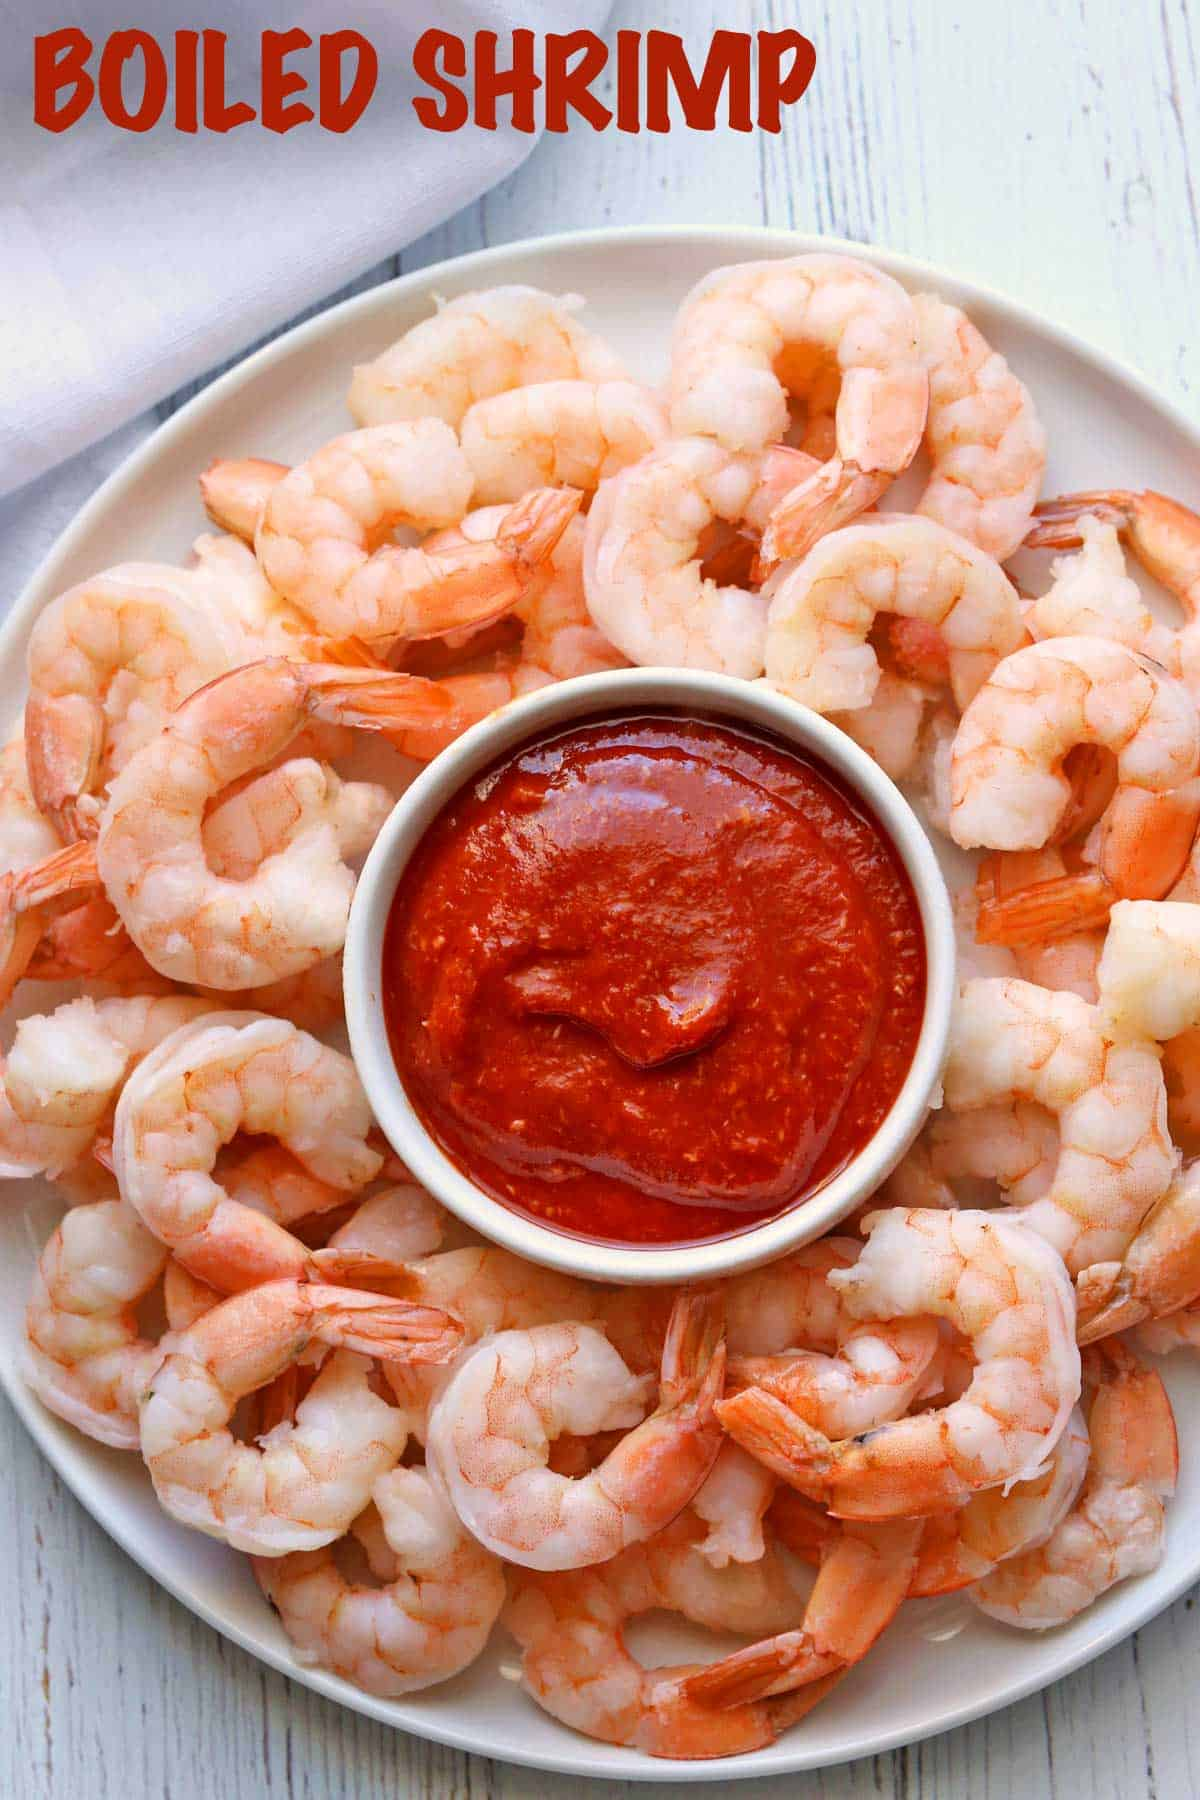 Boiled shrimp served with cocktail sauce.